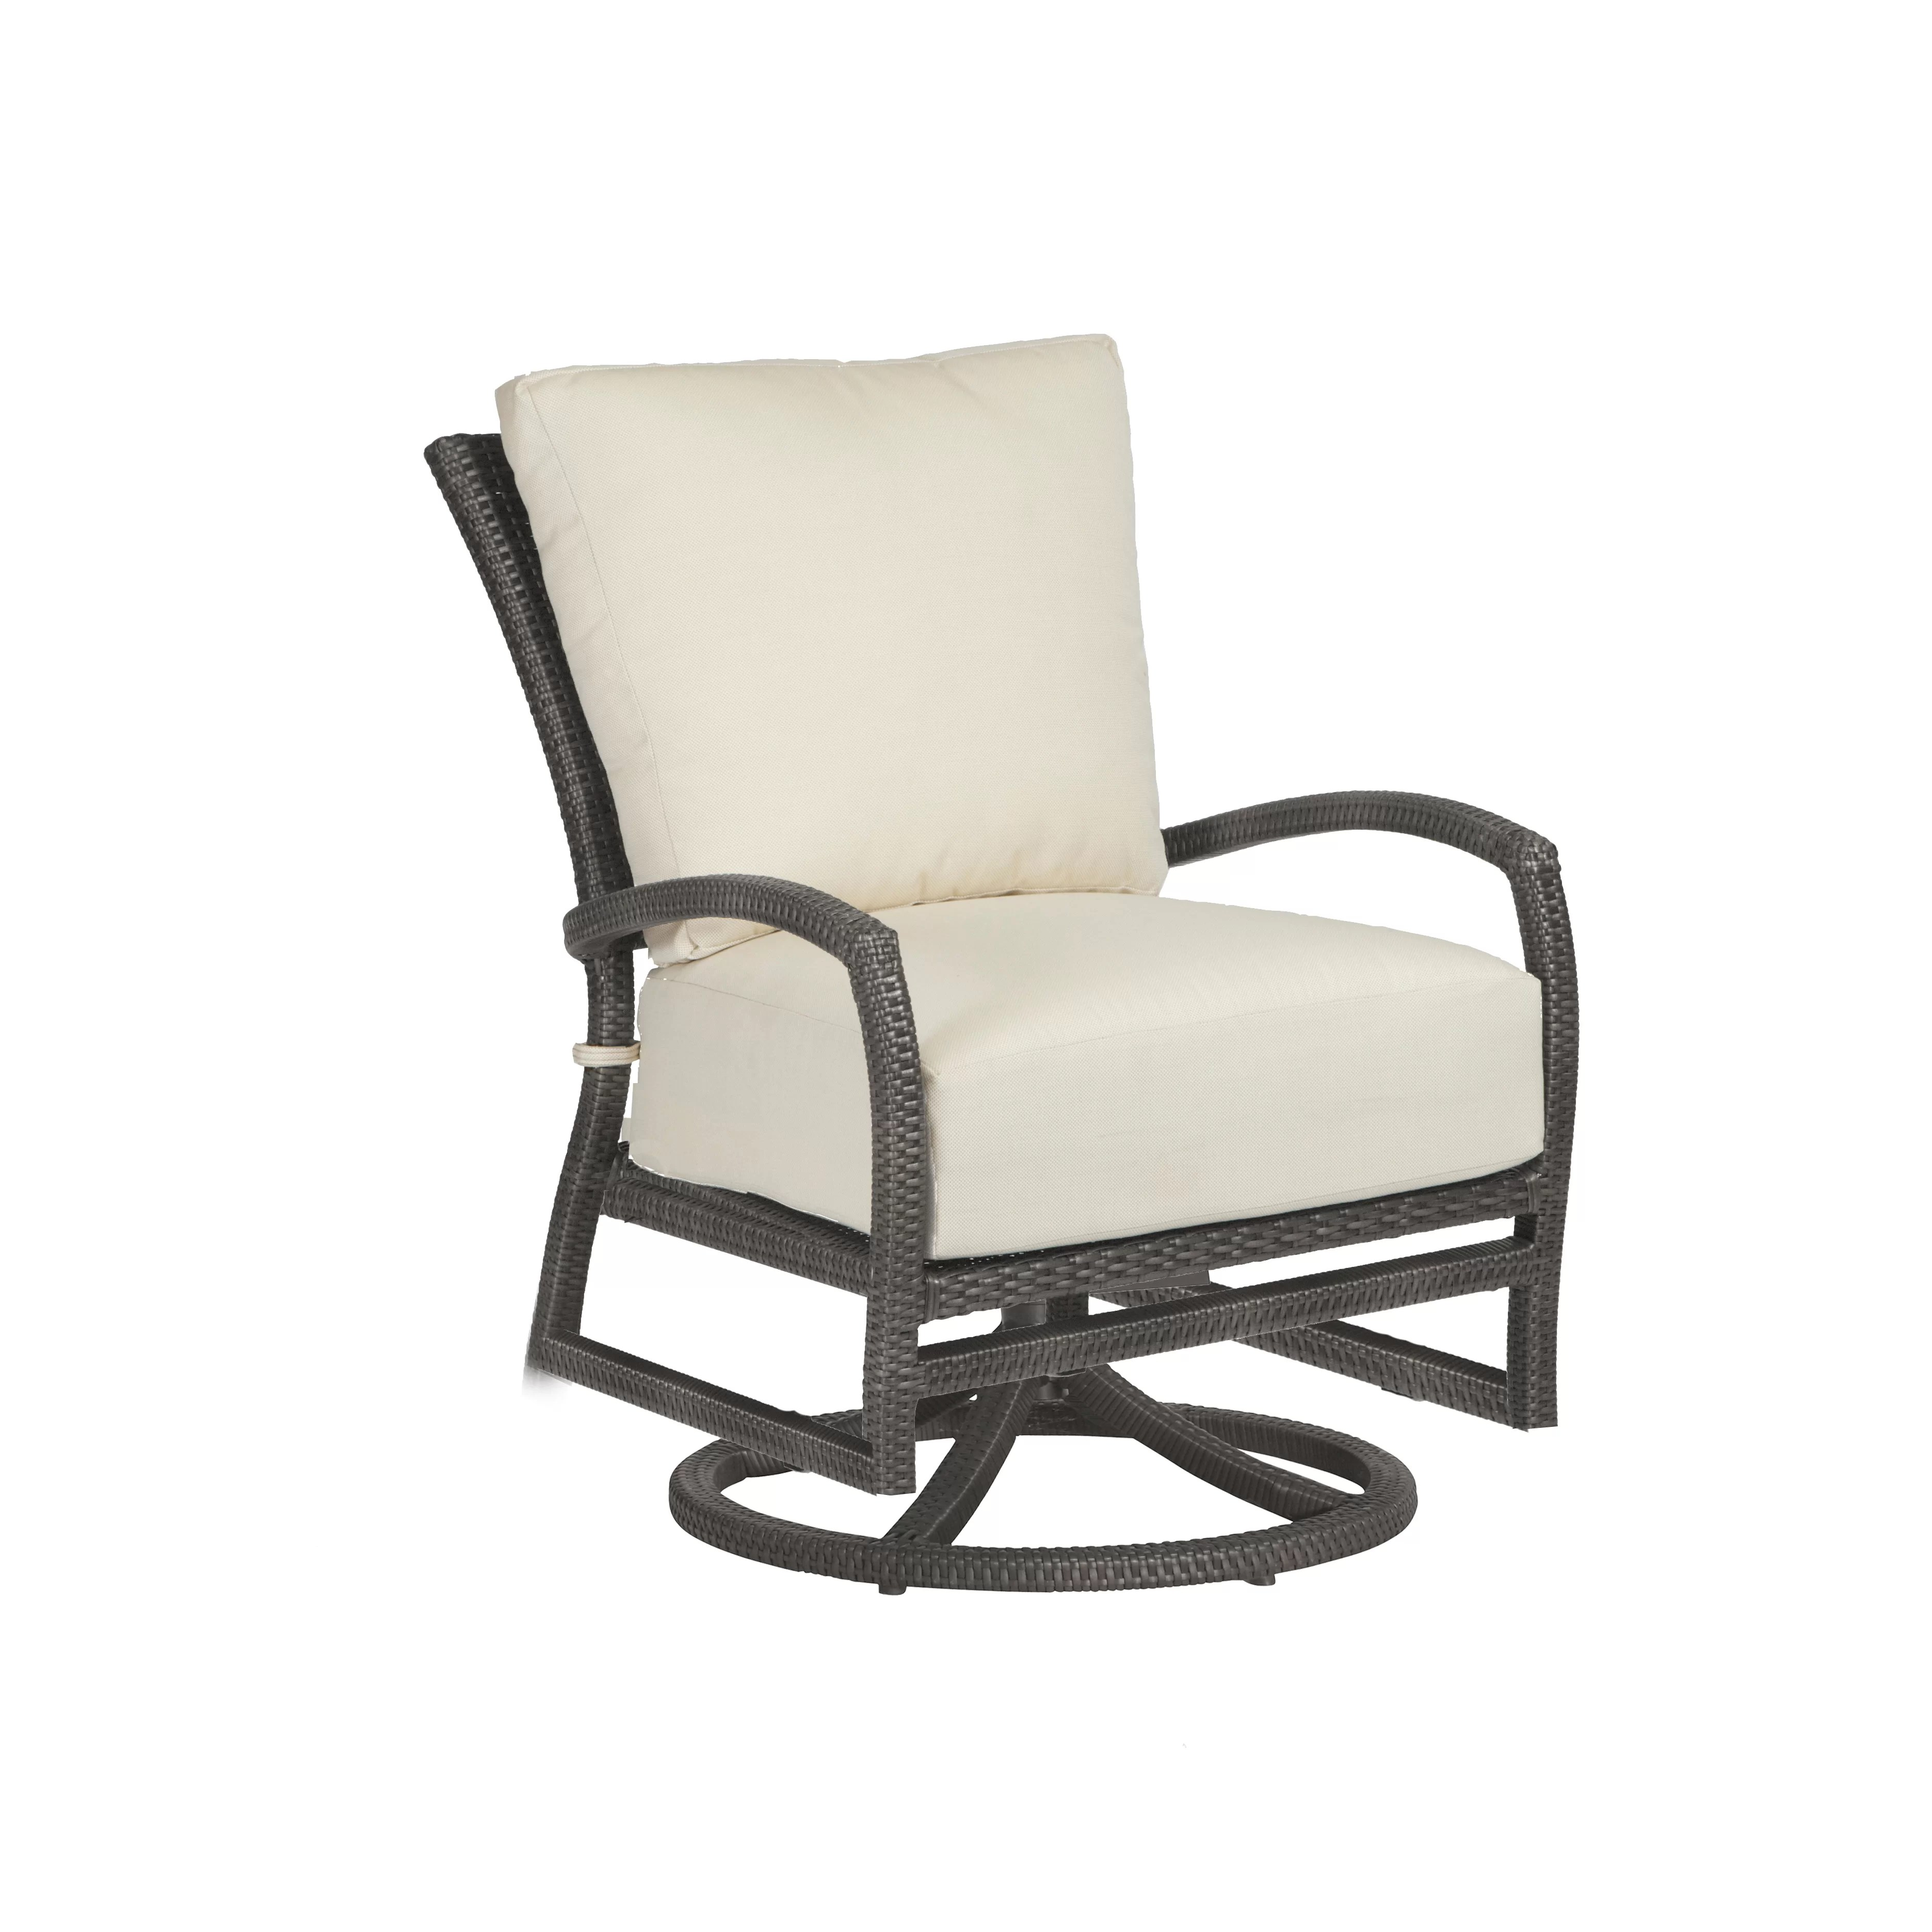 Swivel Rocking Chairs Skye Swivel Rocking Lounge Chair With Cushion